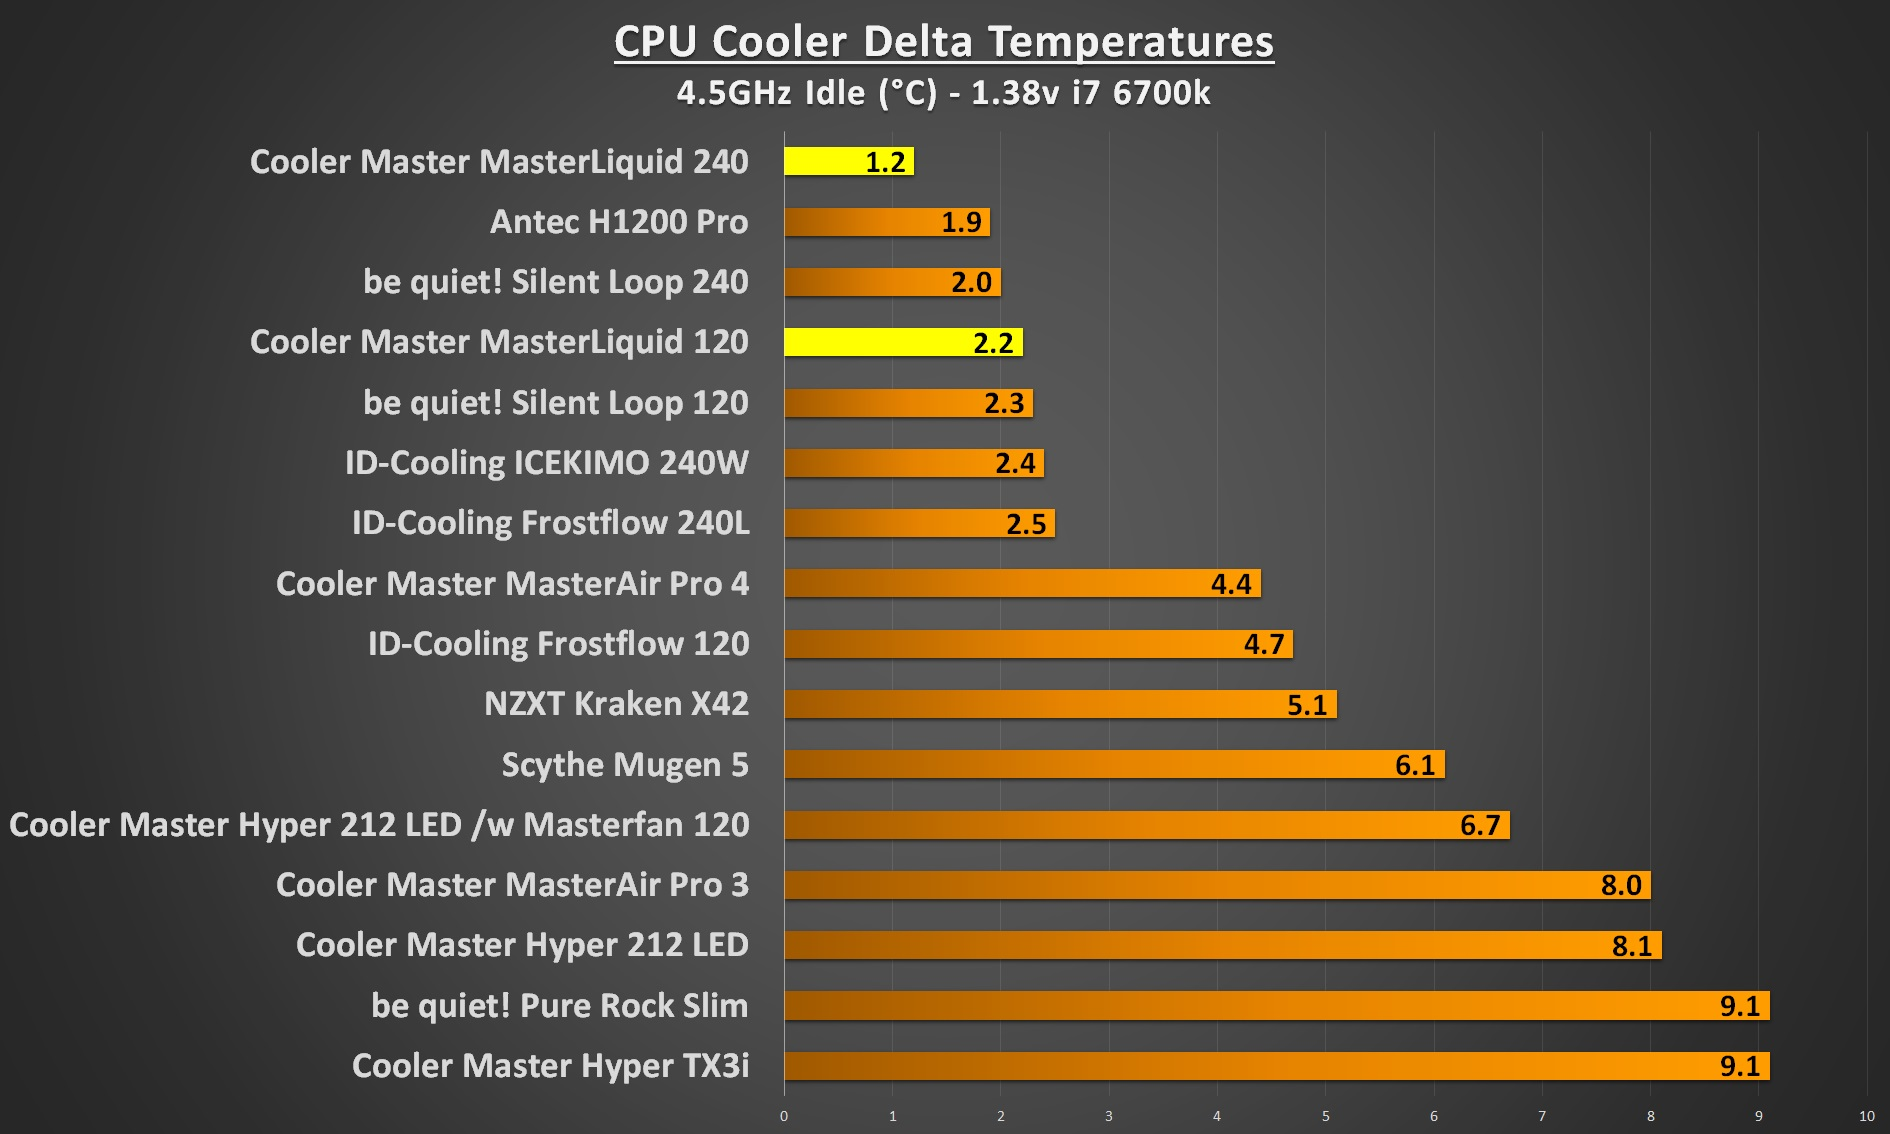 cooler master masterliquid 4.5Ghz idle